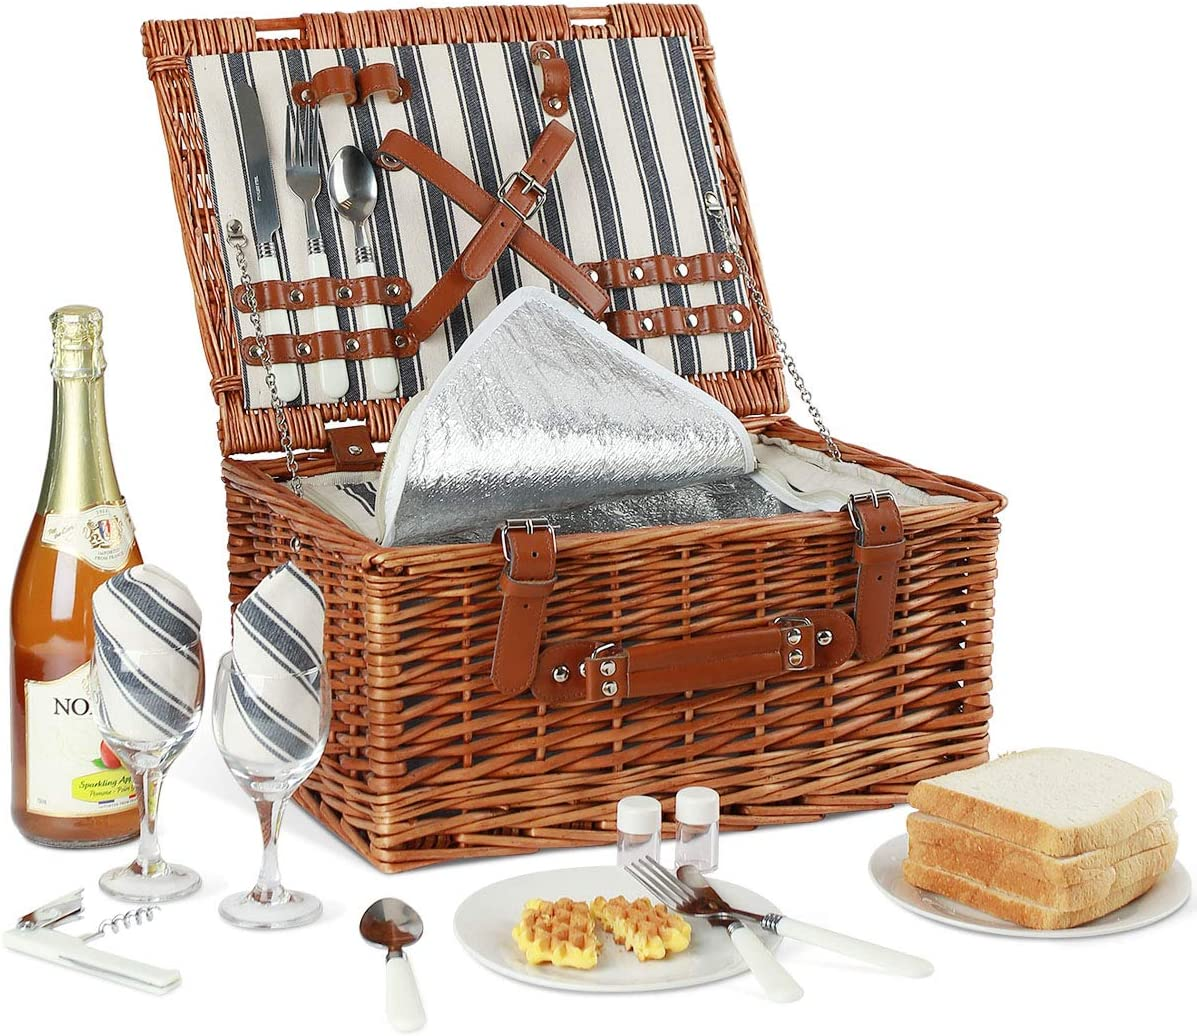 Willow Picnic Basket Set for 2 Persons with Large Insulated Cooler Bag and Classical Cutlery Service Kit Wicker Picnic Hamper for Camping,Outdoor,Valentine Day,Chirtmas,Thanks Giving,Birthday